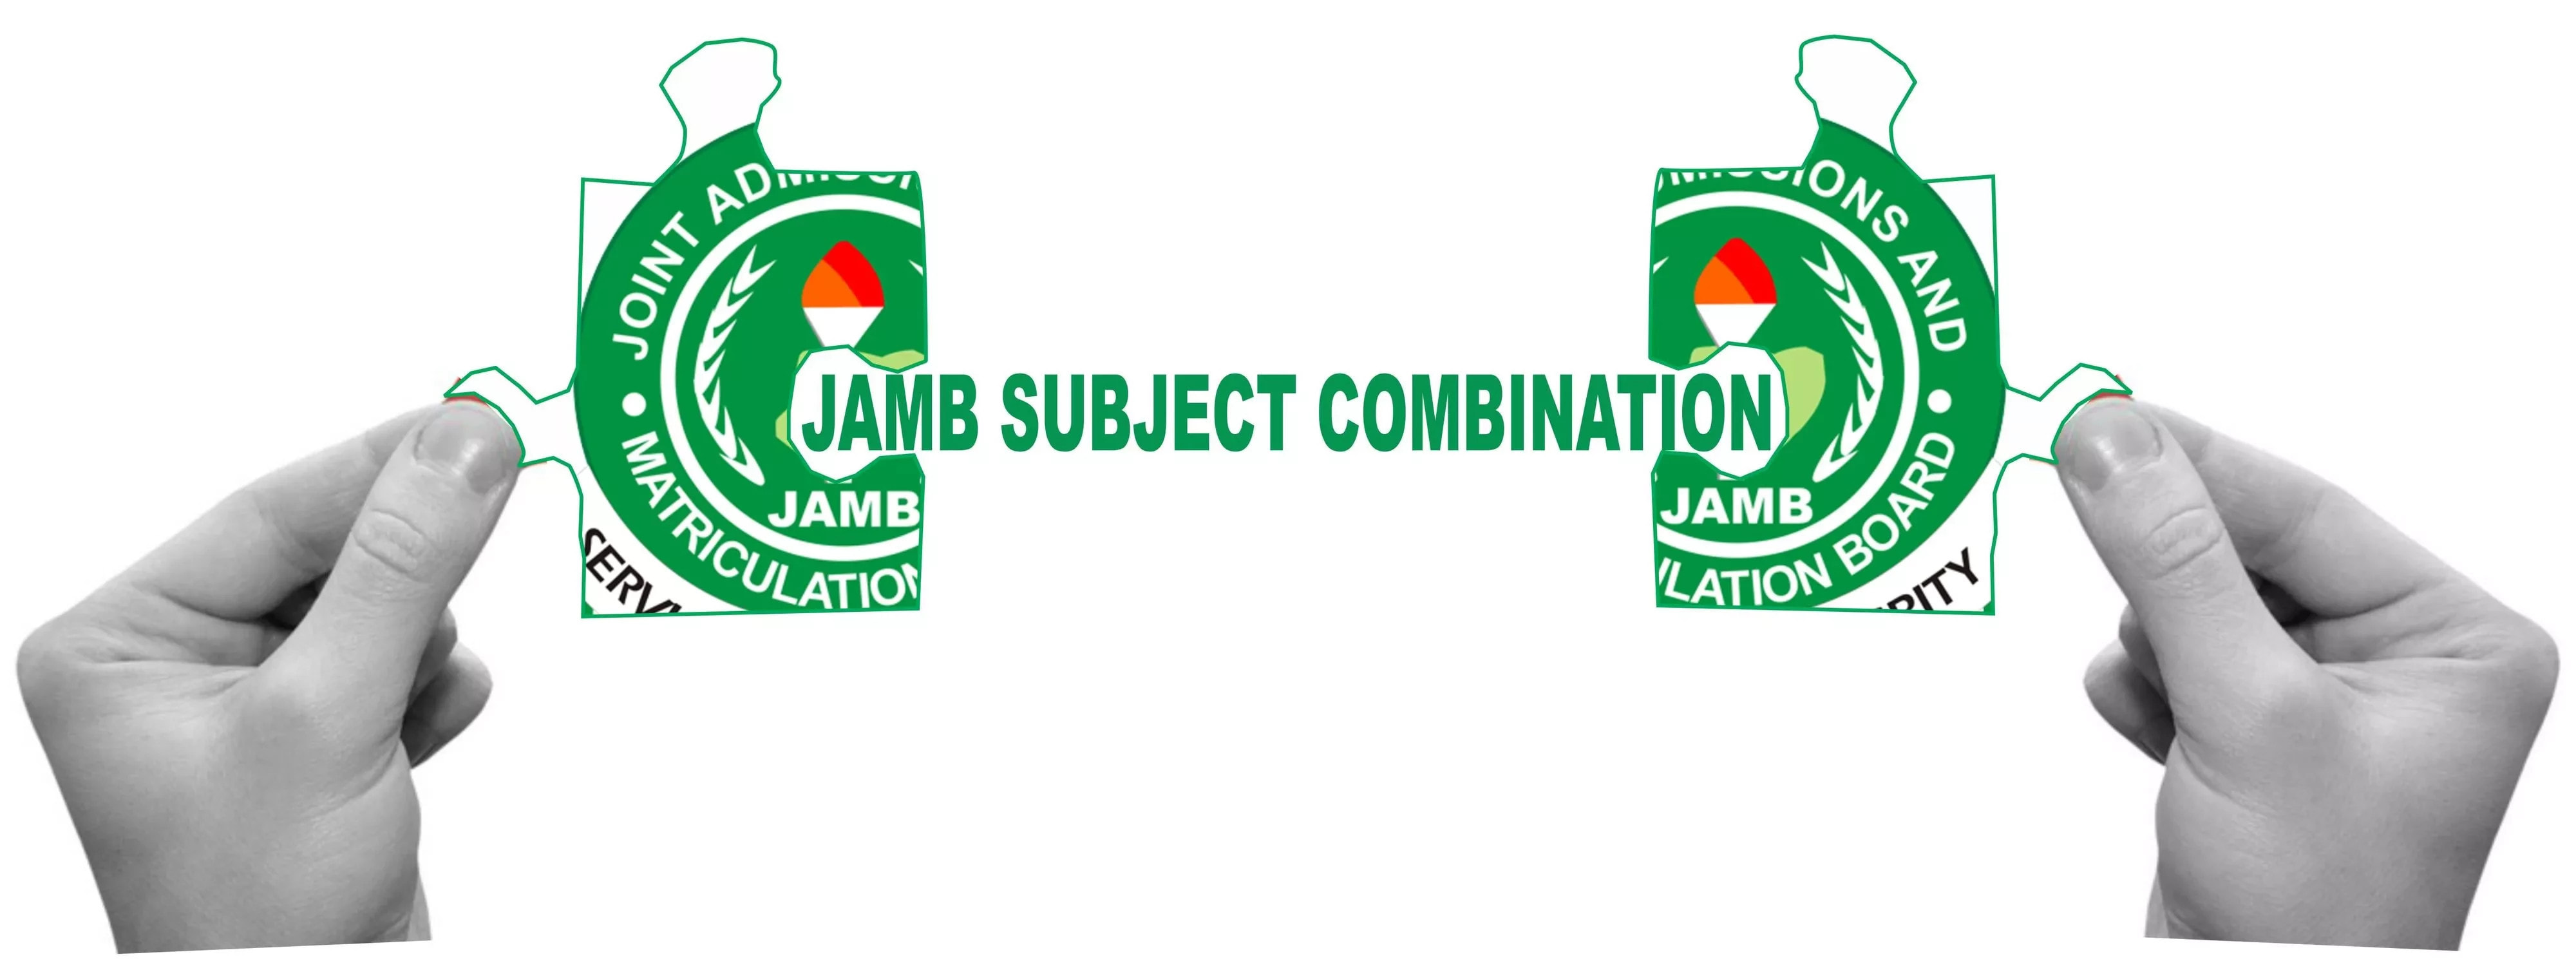 jamb subject combination